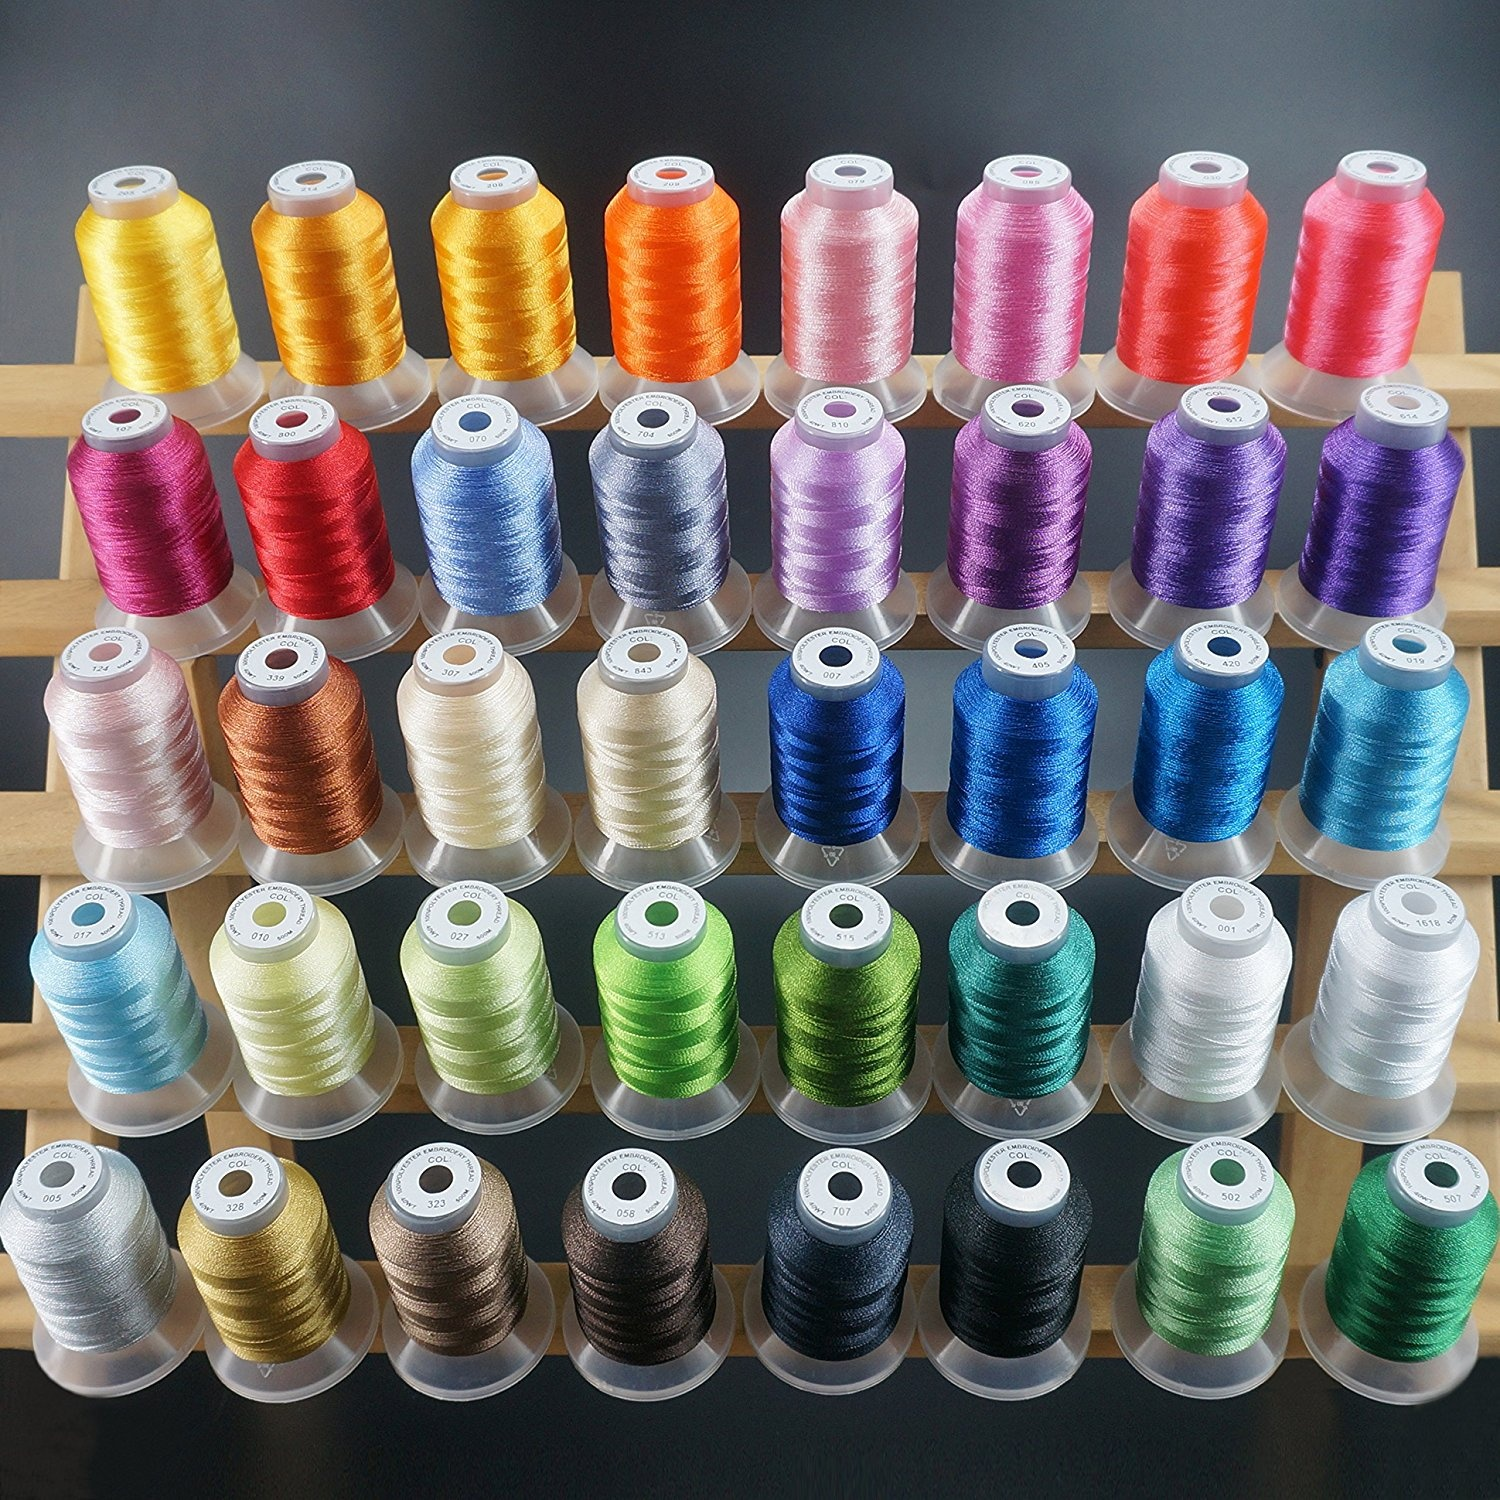 New brothread 40 Brother Colours Polyester Machine Embroidery Thread Kit 500M